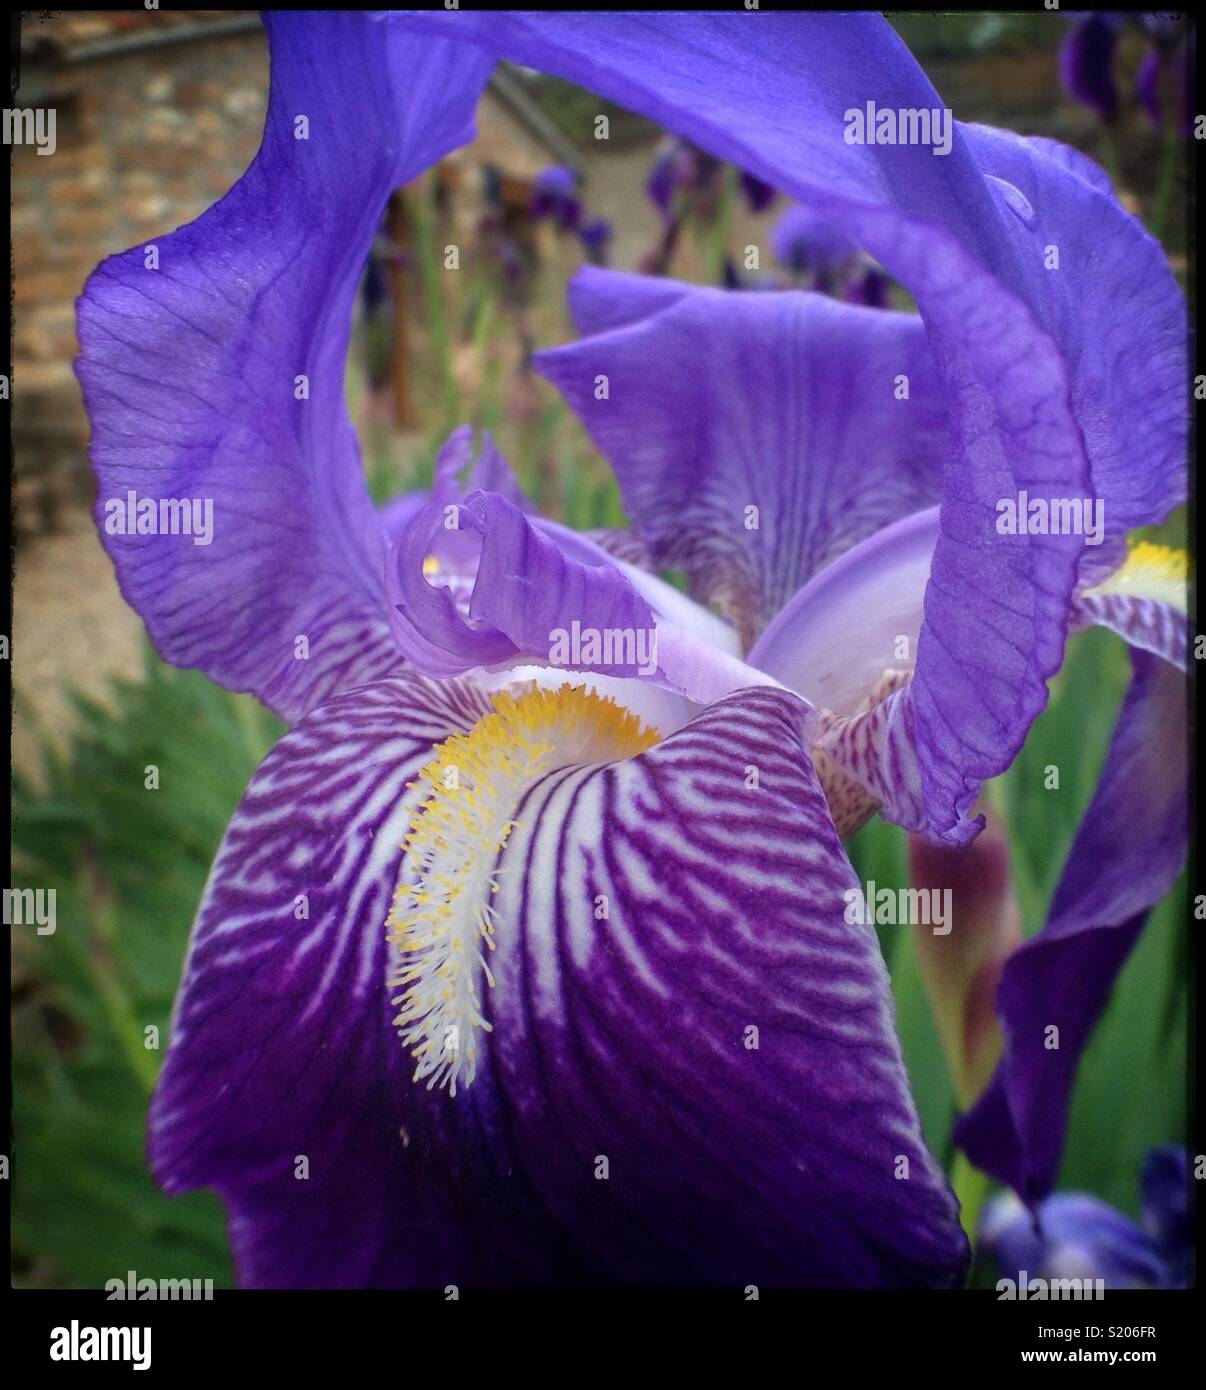 The Flower Of The Fleur De Lys Also Known As The Bearded Iris